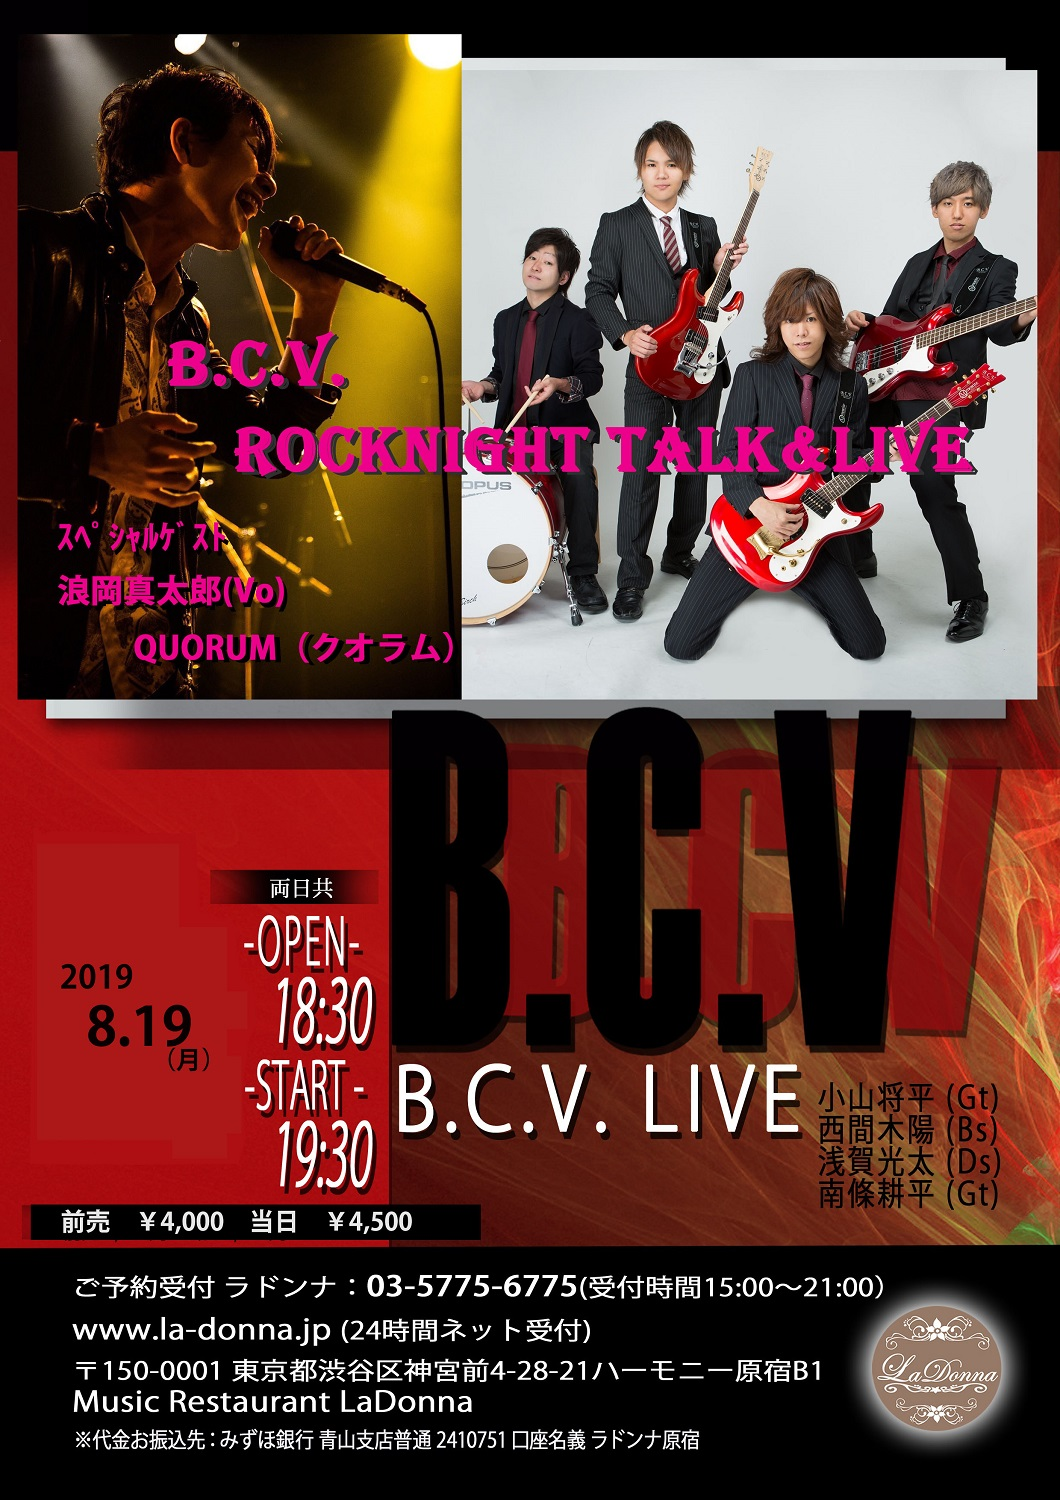 LaDonna Presents  B.C.V.  RockNight  Talk&Live   &  Captain's Birthday!